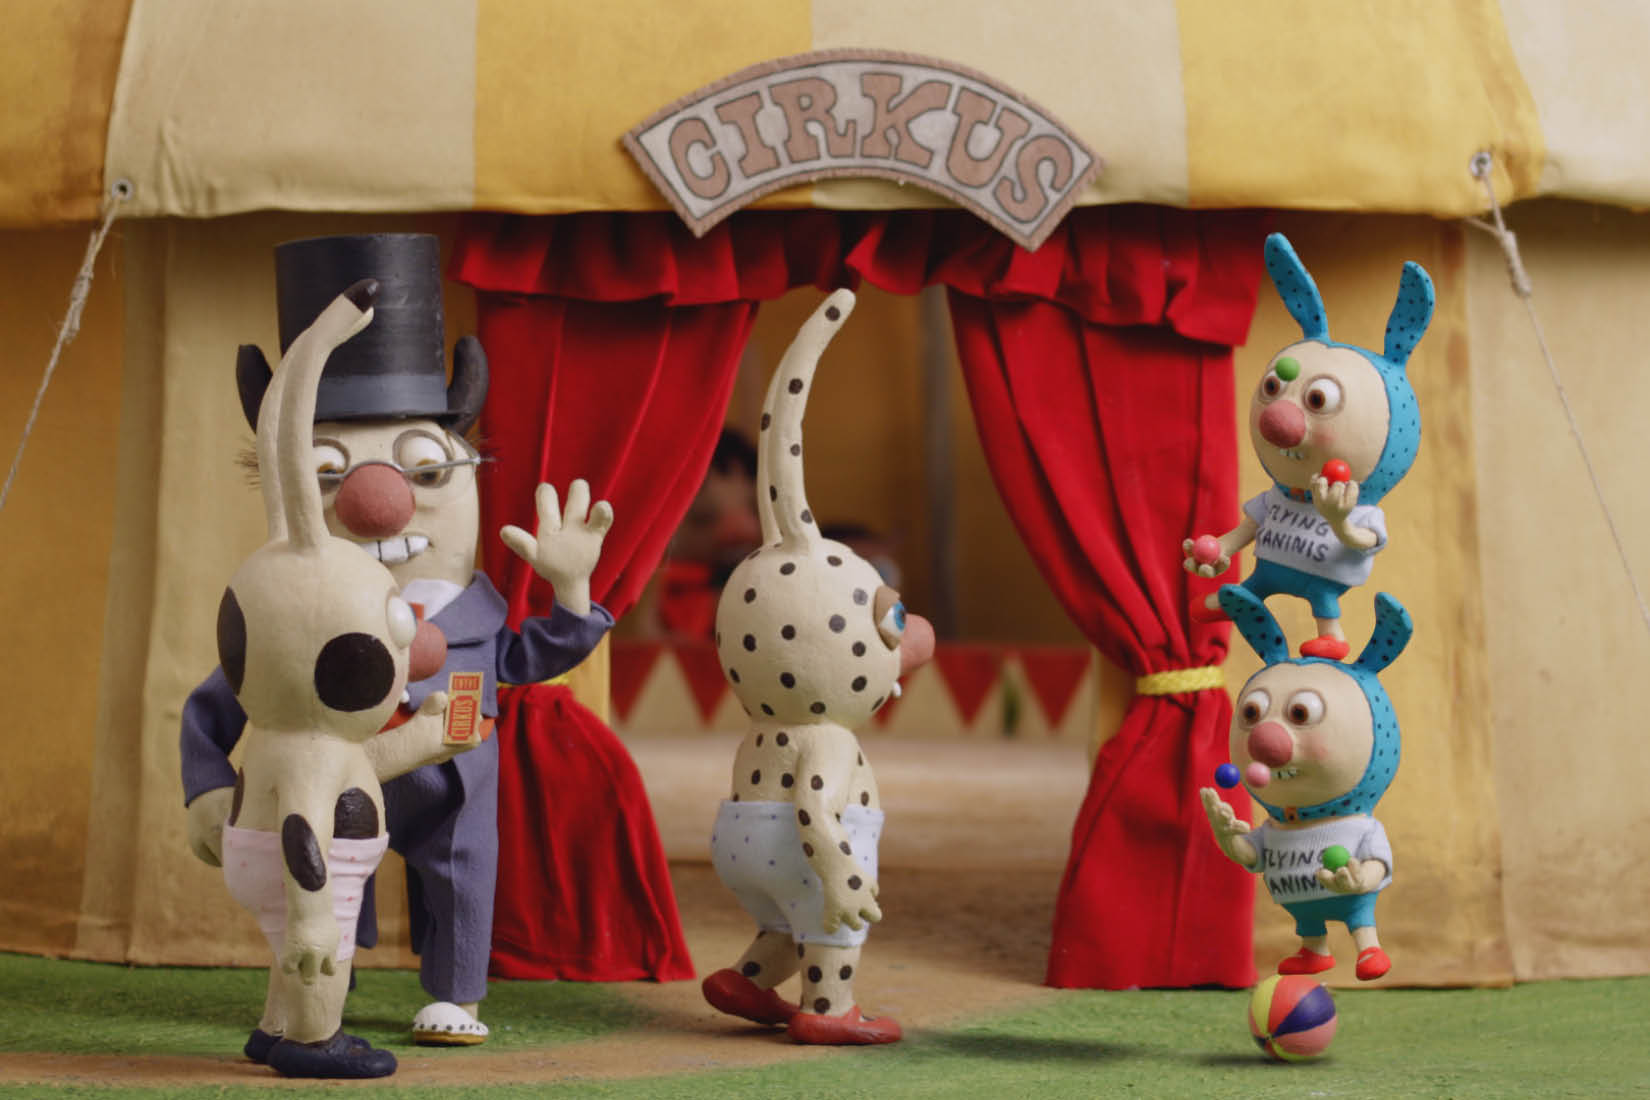 Gros-pois and Petit-point go to the circus and are greeted by acrobats.